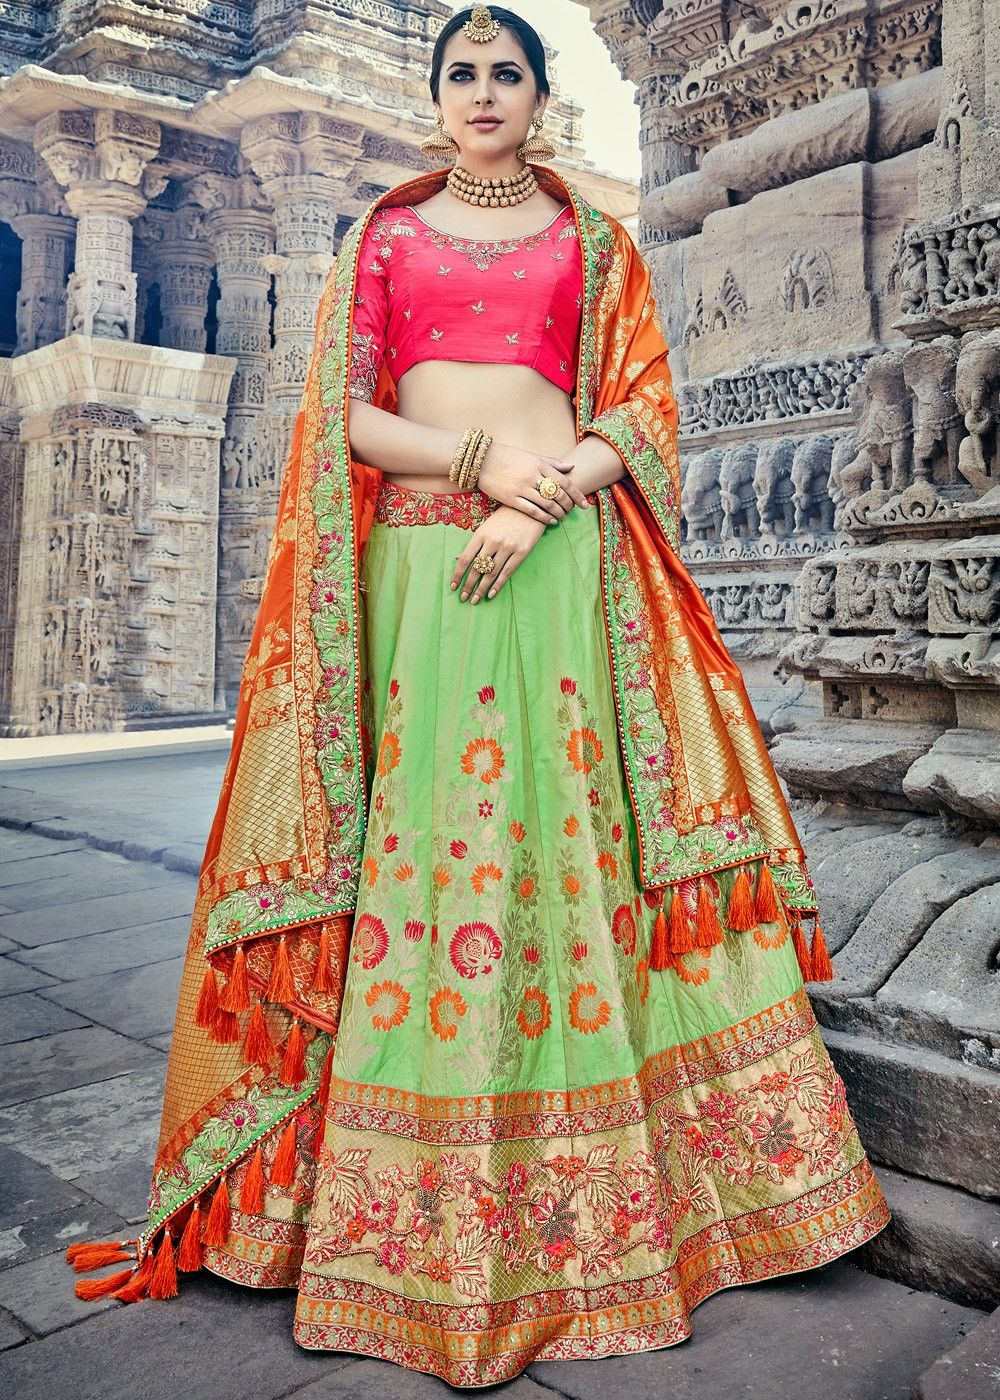 926f331b09 Buy Light Green Bridal Lehenga Choli in Banarasi Silk with Dupatta online,  Work: Beads Work,Stone Work,Woven,Zari, Color: Green, Occassion:  Bridal,Reception ...